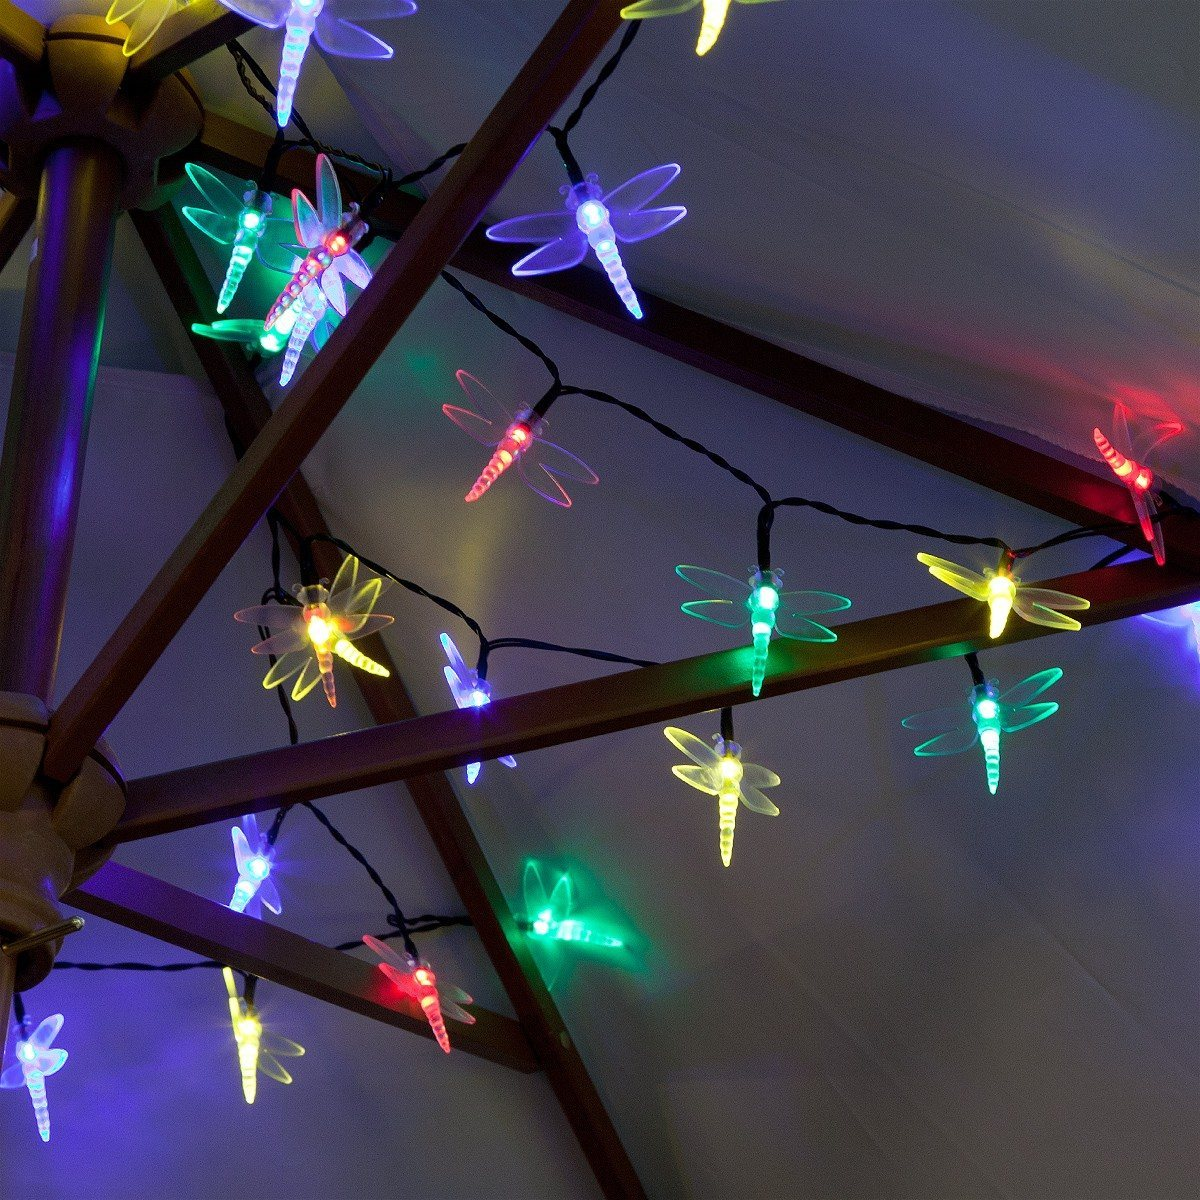 50 Multi Colour LED Dragonfly Battery Operated Fairy Lights with Timer